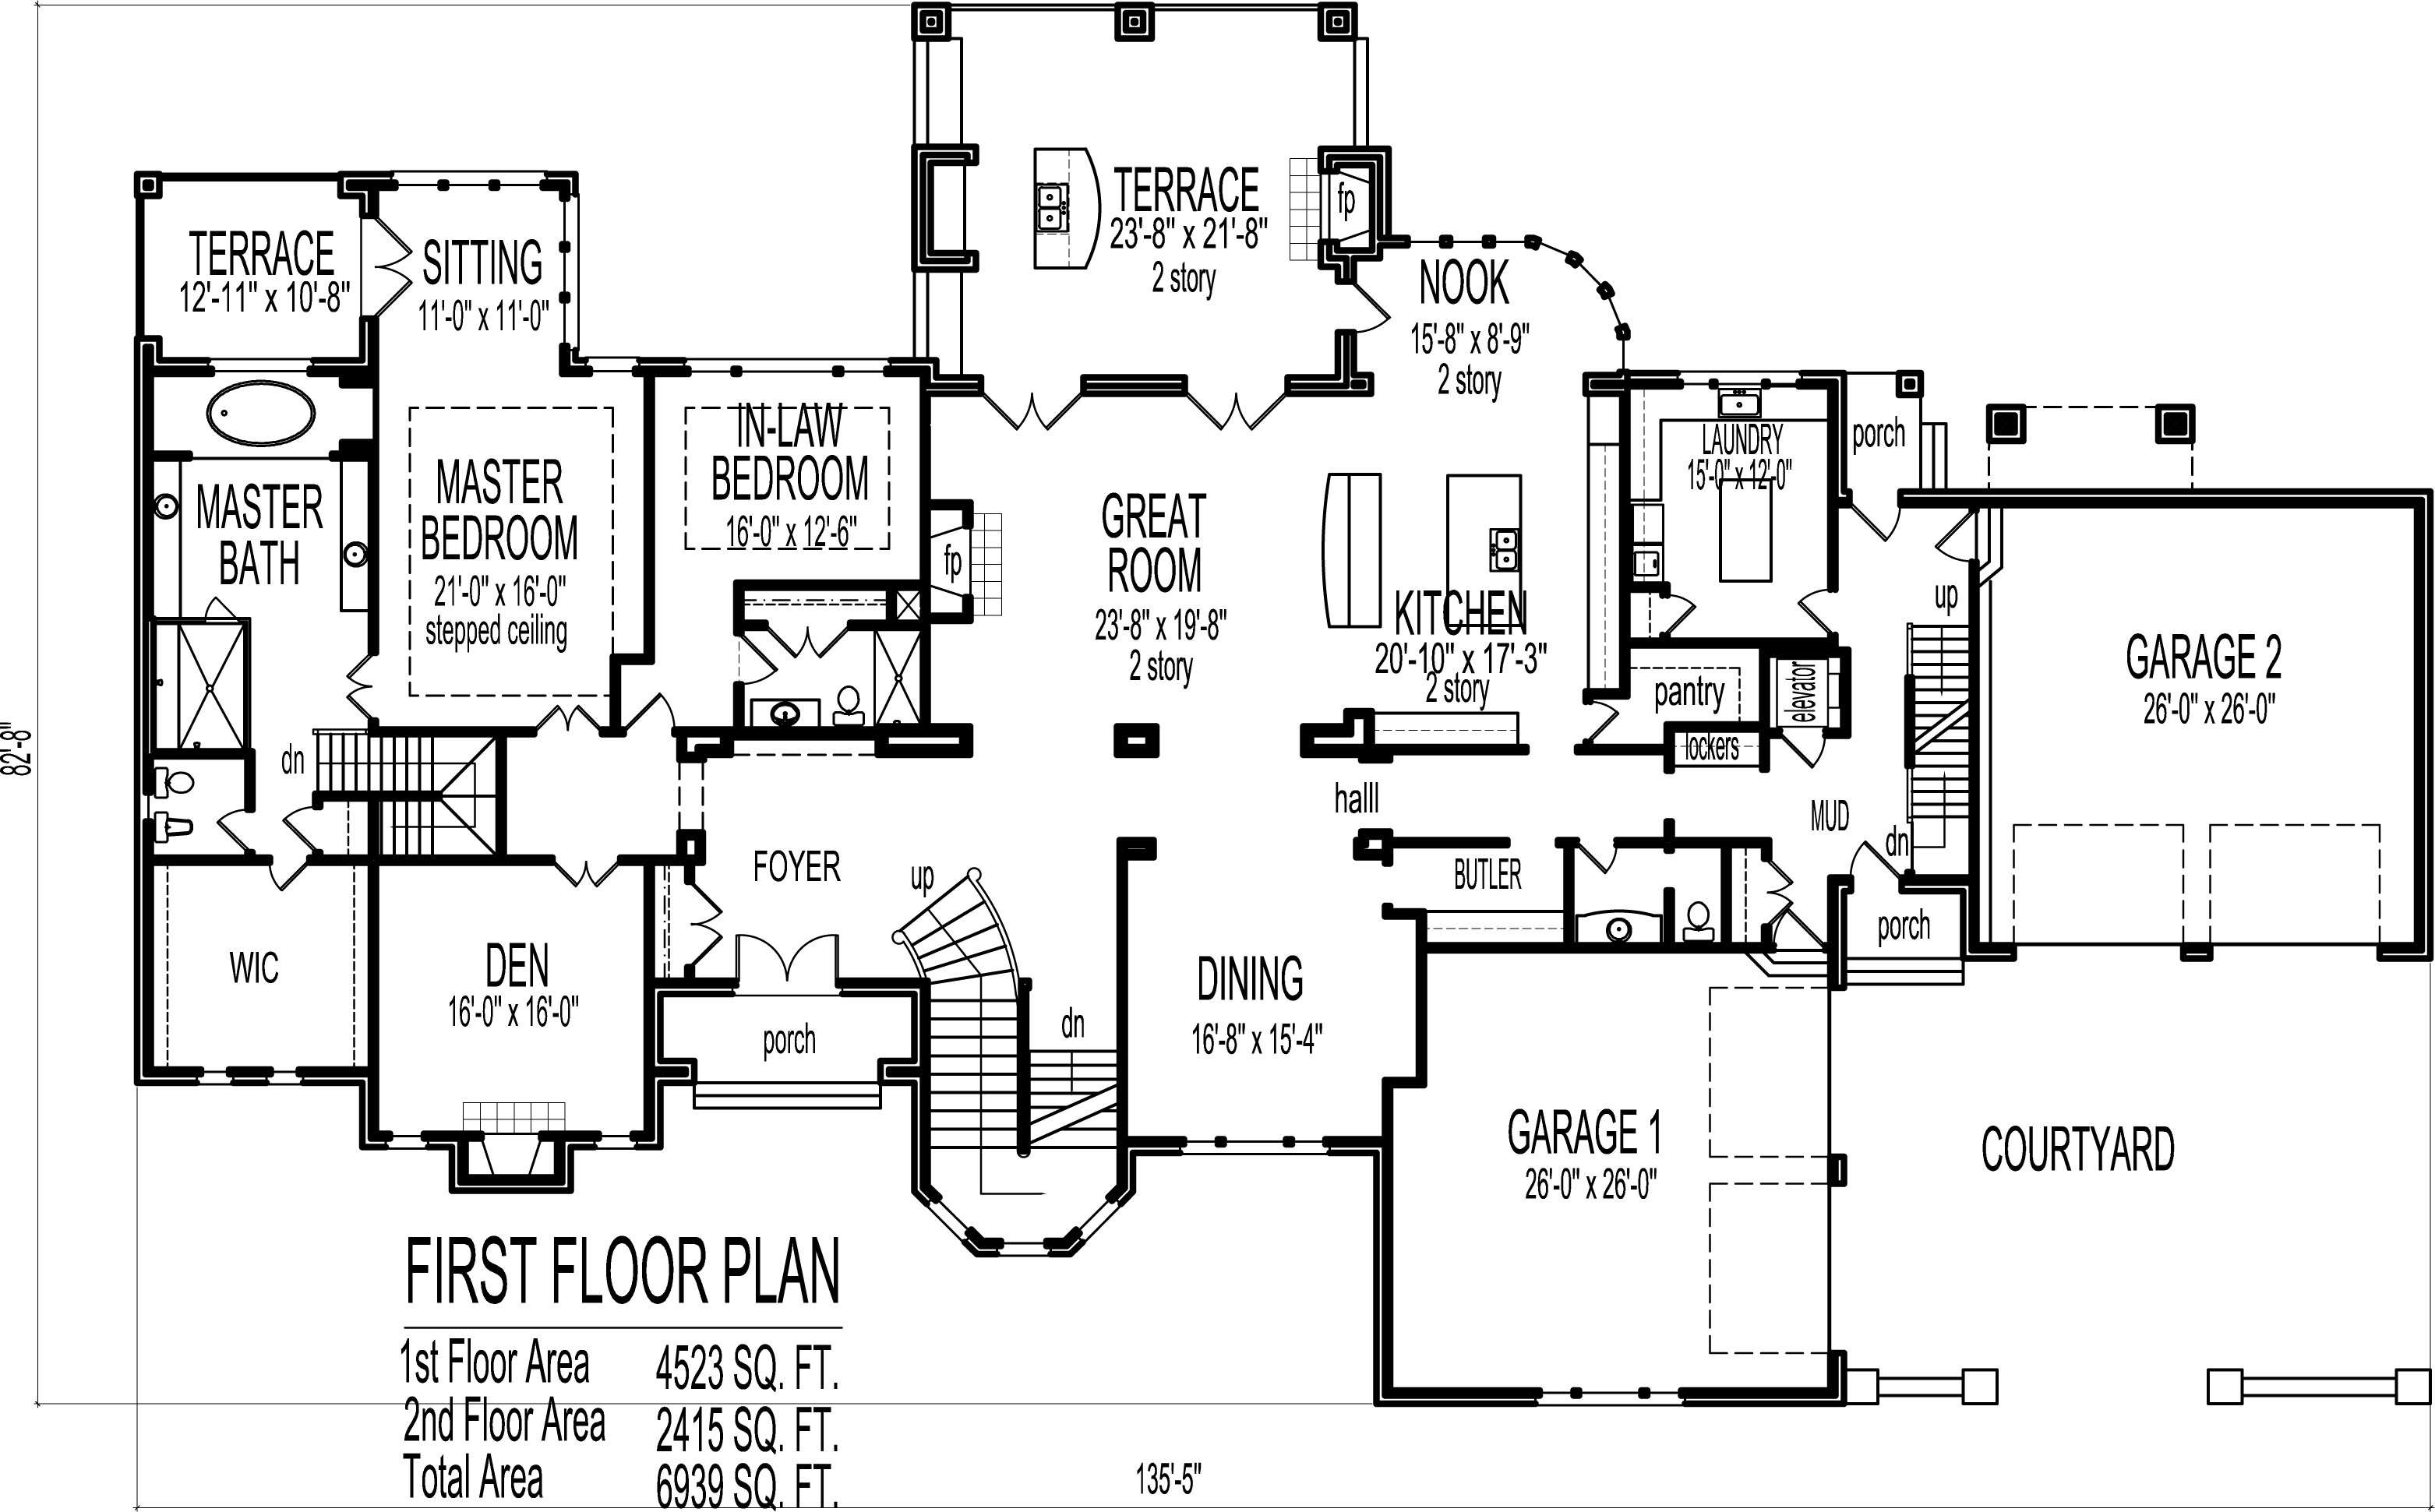 House Floor Plans Blueprints Story Bedroom Large Home Designs